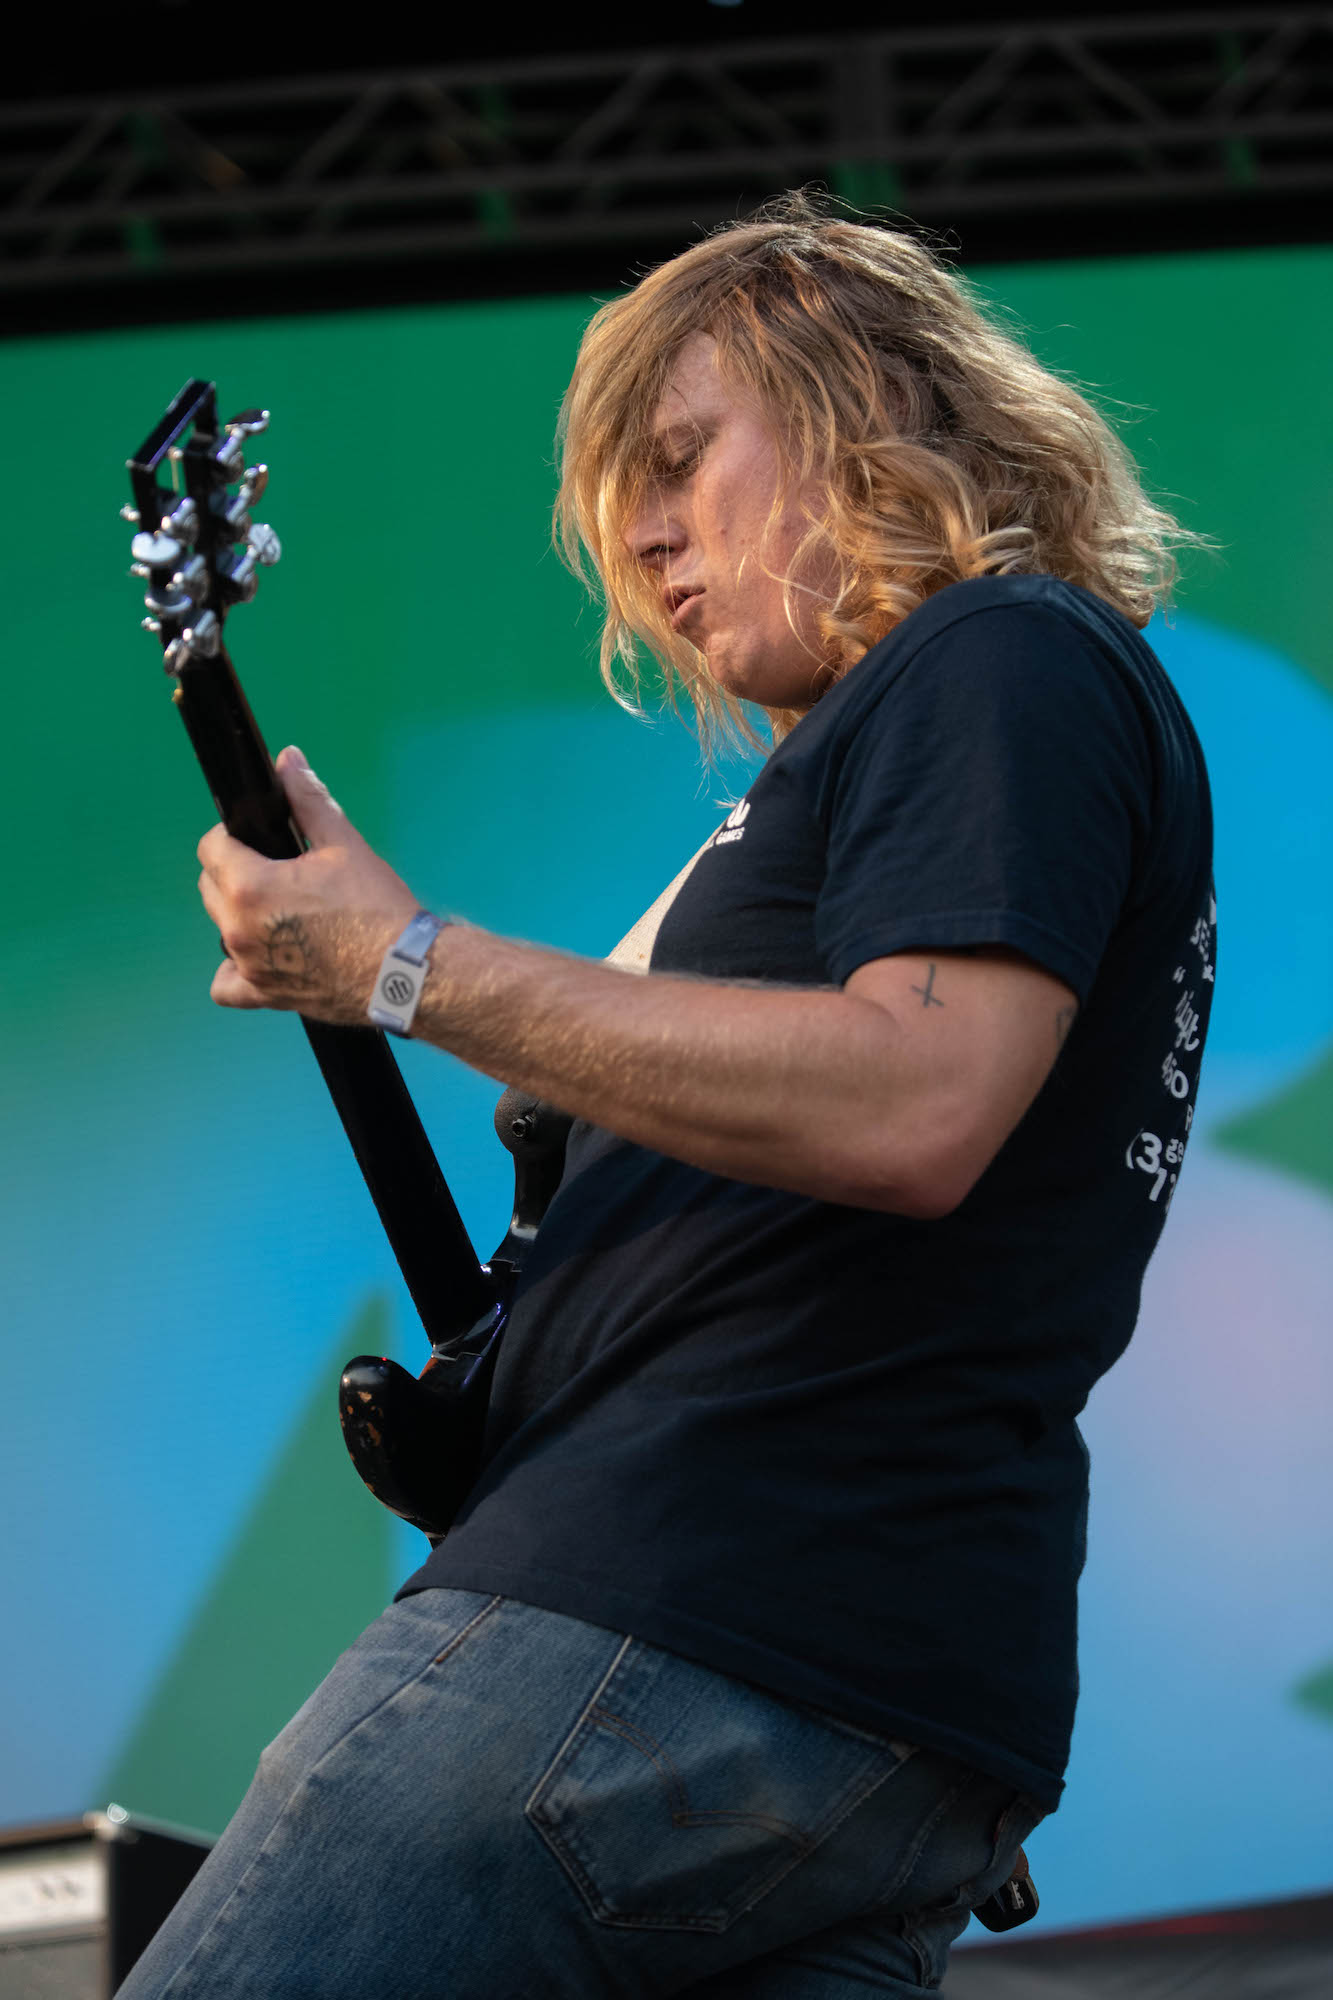 Ty Segall Live at Pitchfork [GALLERY] 7